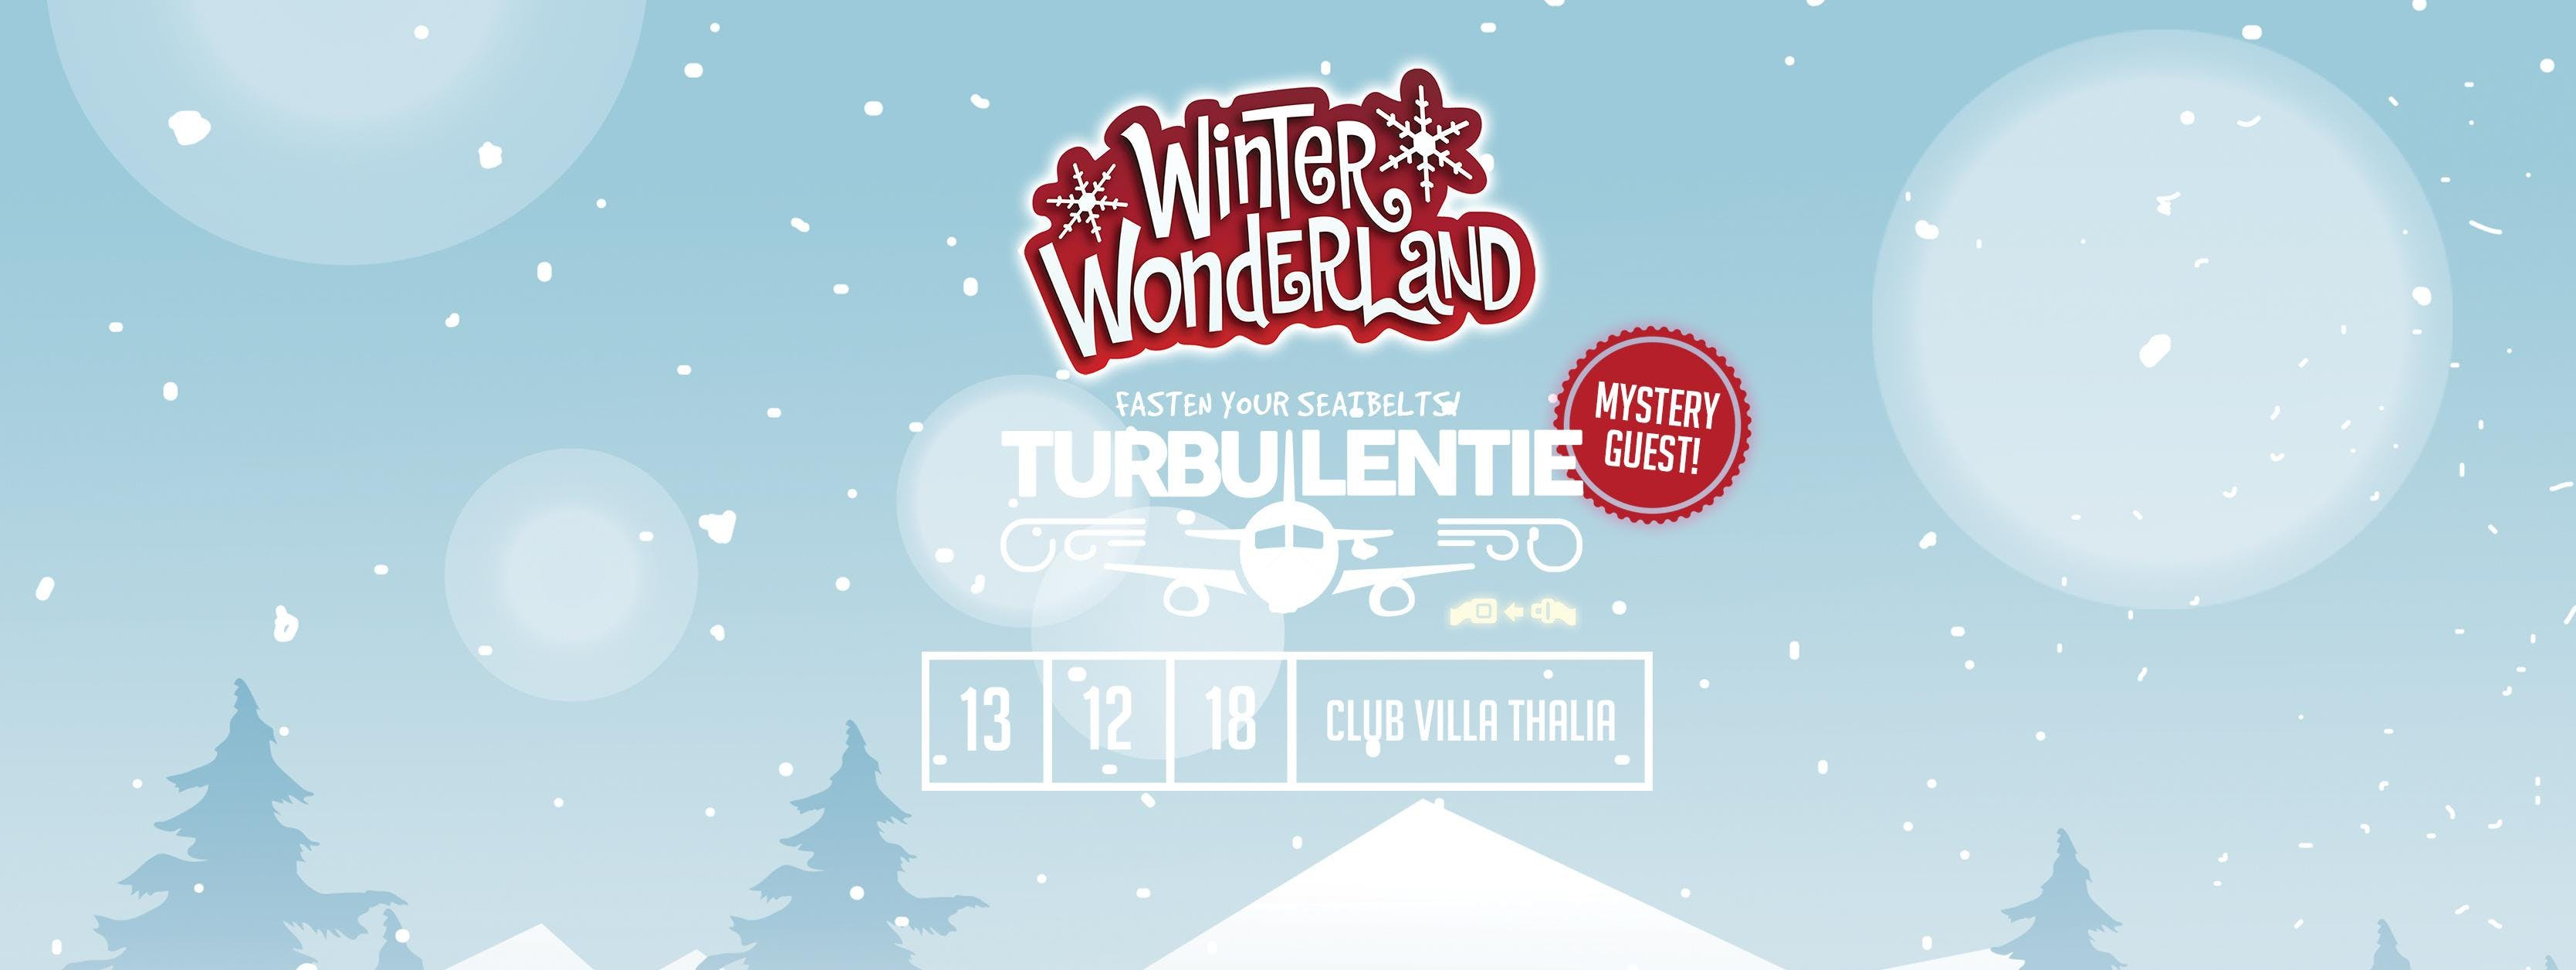 Turbulentie X Winter Wonderland